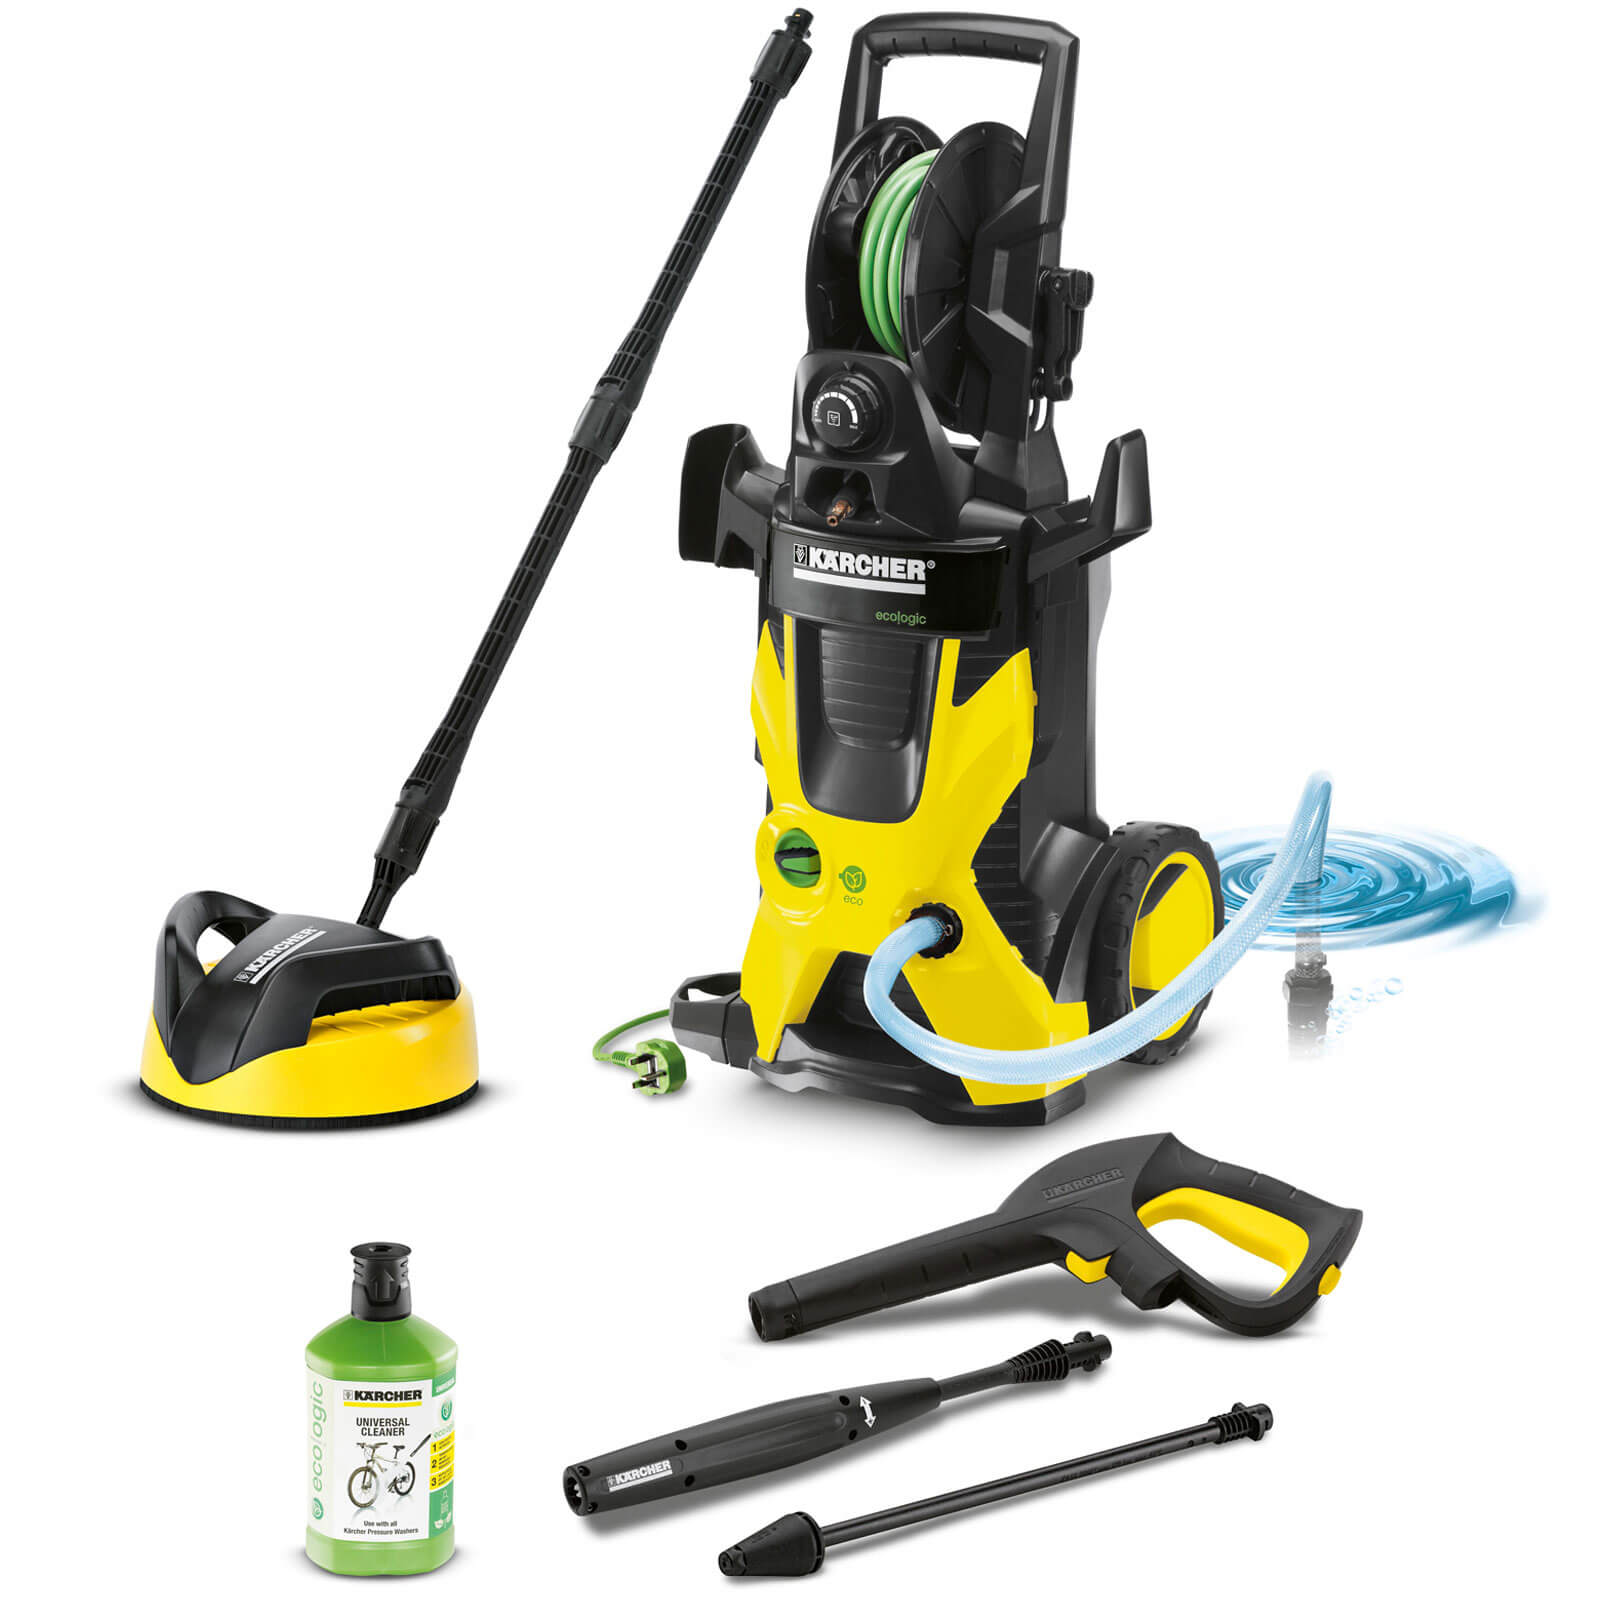 Karcher K5 Premium Home Eco Water Cooled Pressure Washer with Patio Cleaner & Hose Reel 20 - 145 Bar 2100w 240v